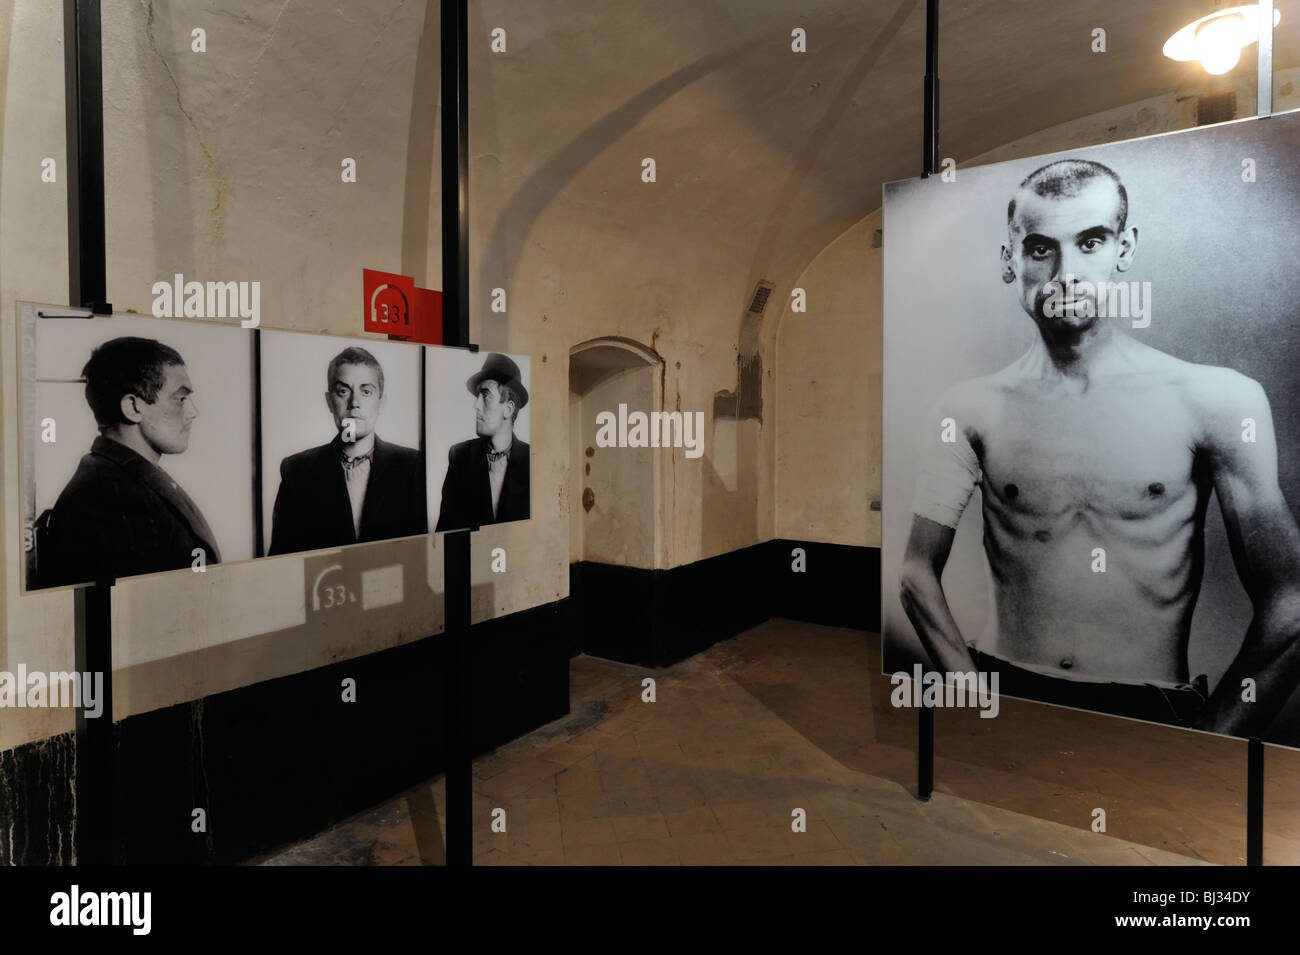 Pictures of political prisoners at Fort Breendonk, Second World War Two concentration camp in Belgium - Stock Image